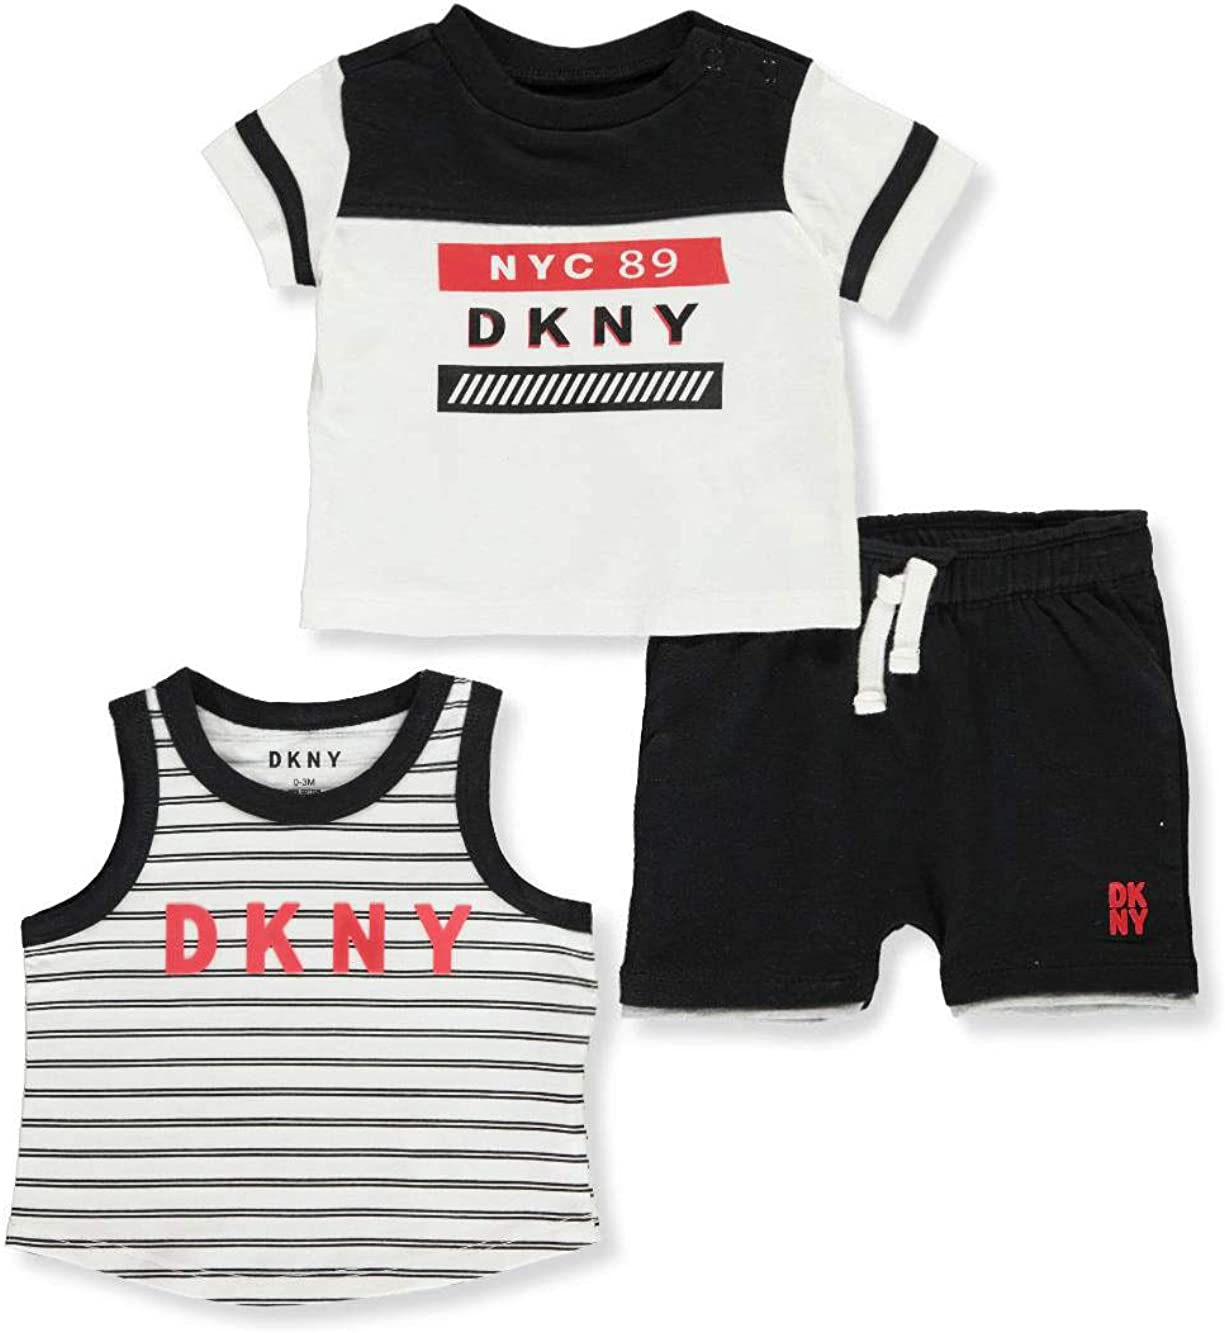 DKNY Baby Boys 3-Piece Shorts Set Outfit